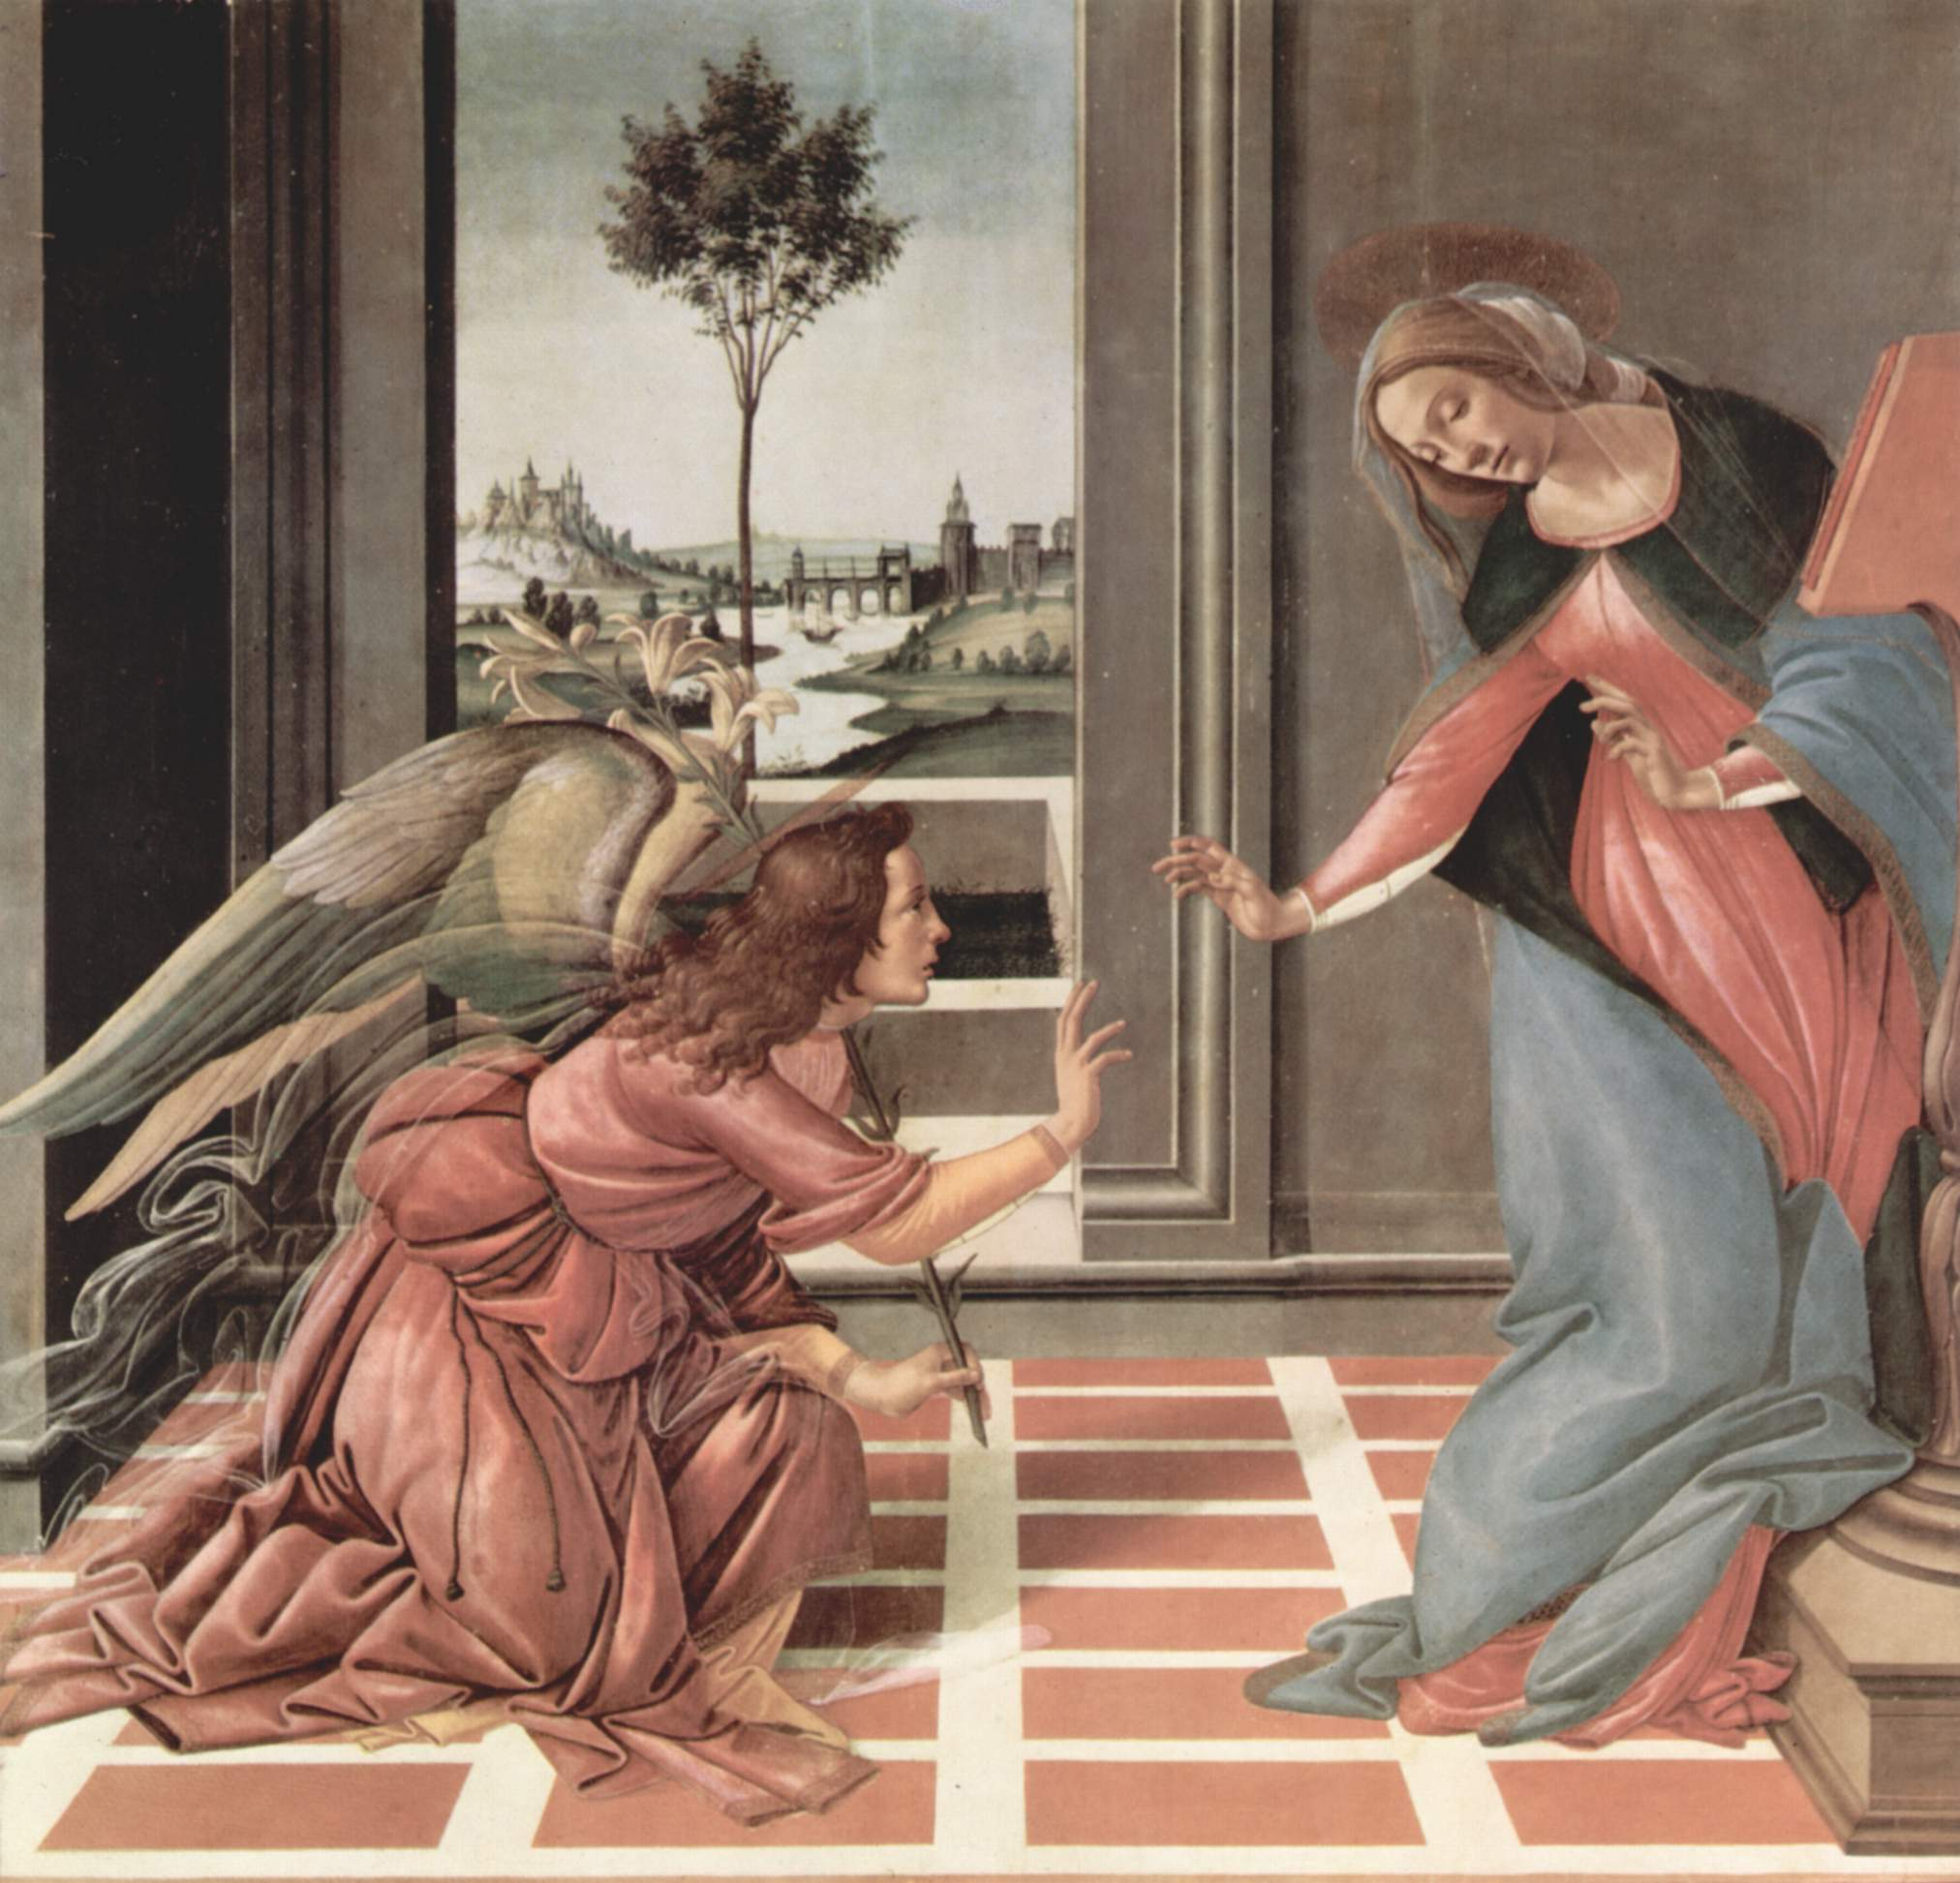 Sandro Botticelli [Public domain or Public domain], via Wikimedia Commons